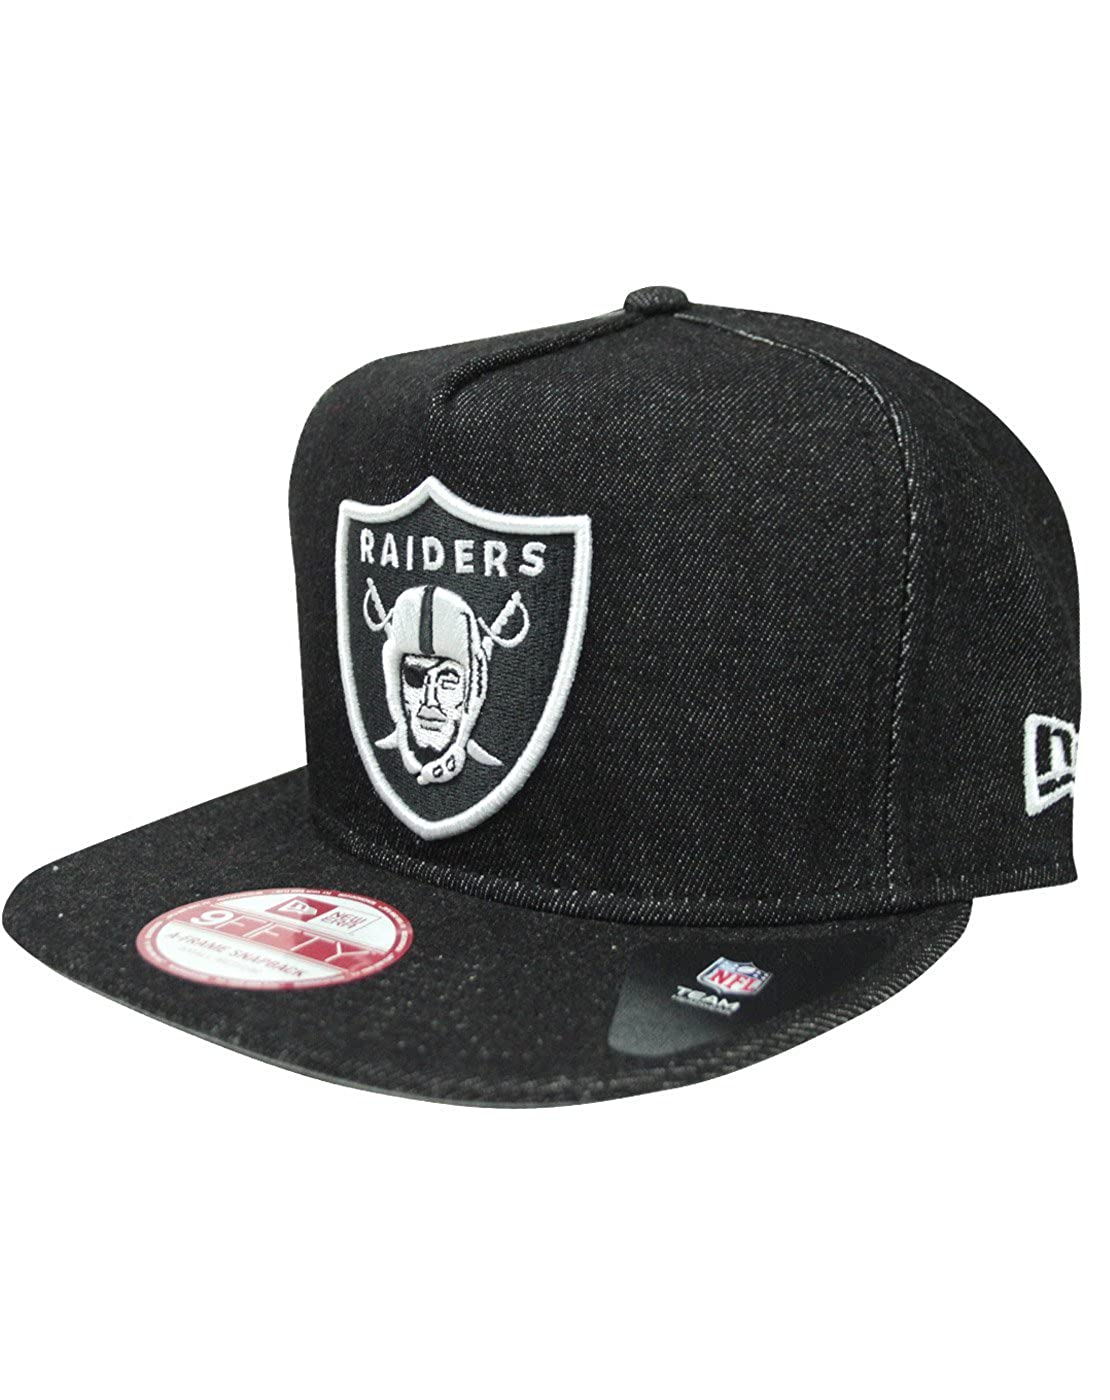 A NEW ERA Hombres Oakland Raiders - Gorra (M-L): Amazon.es: Ropa y ...